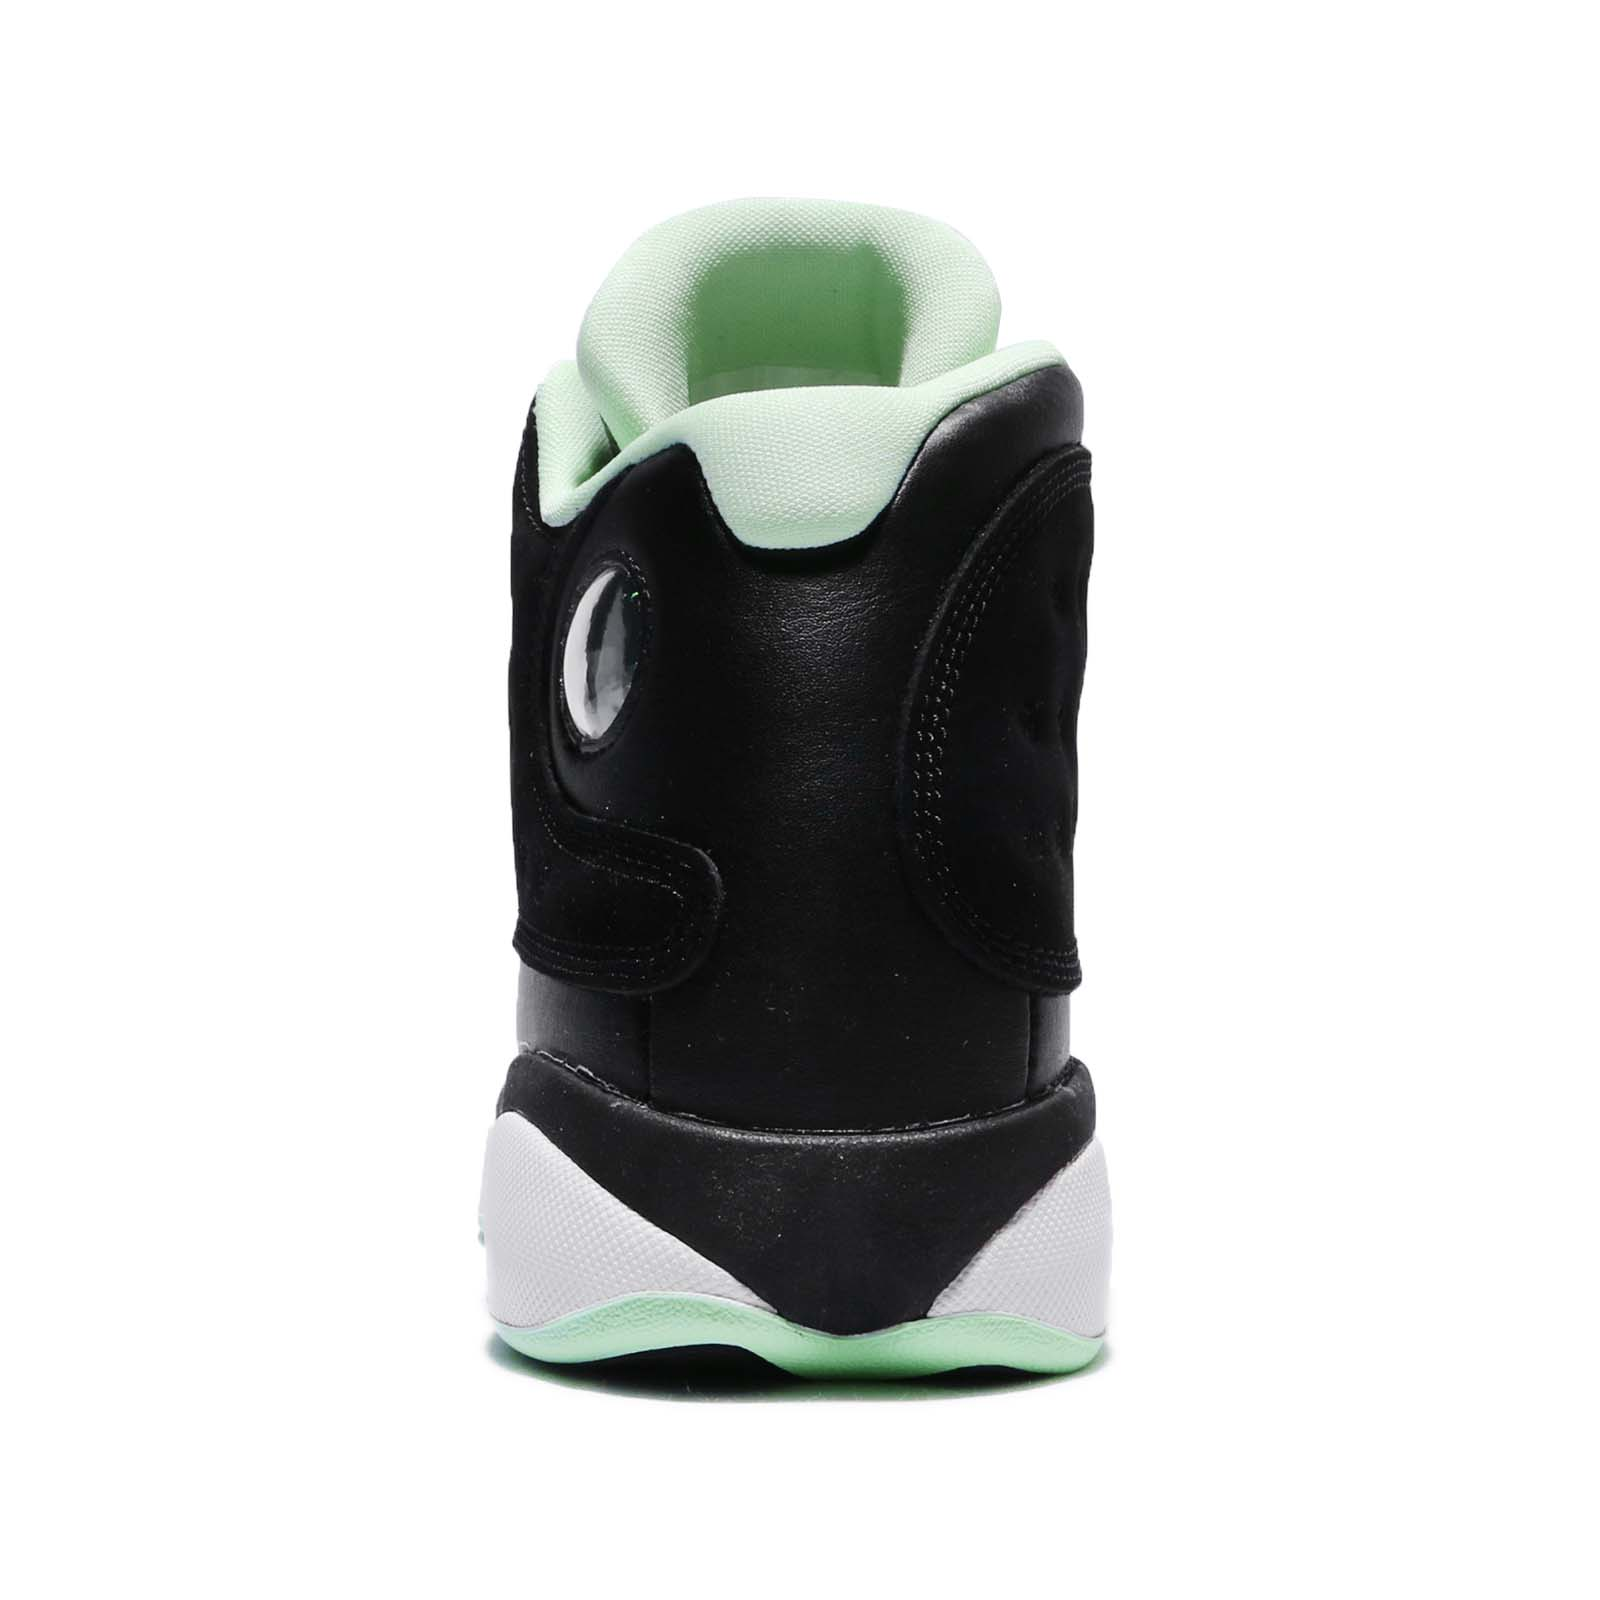 e919469f882a7a Nike Air Jordan Retro 13 GG Left Foot With Discoloration Kid Youth ...